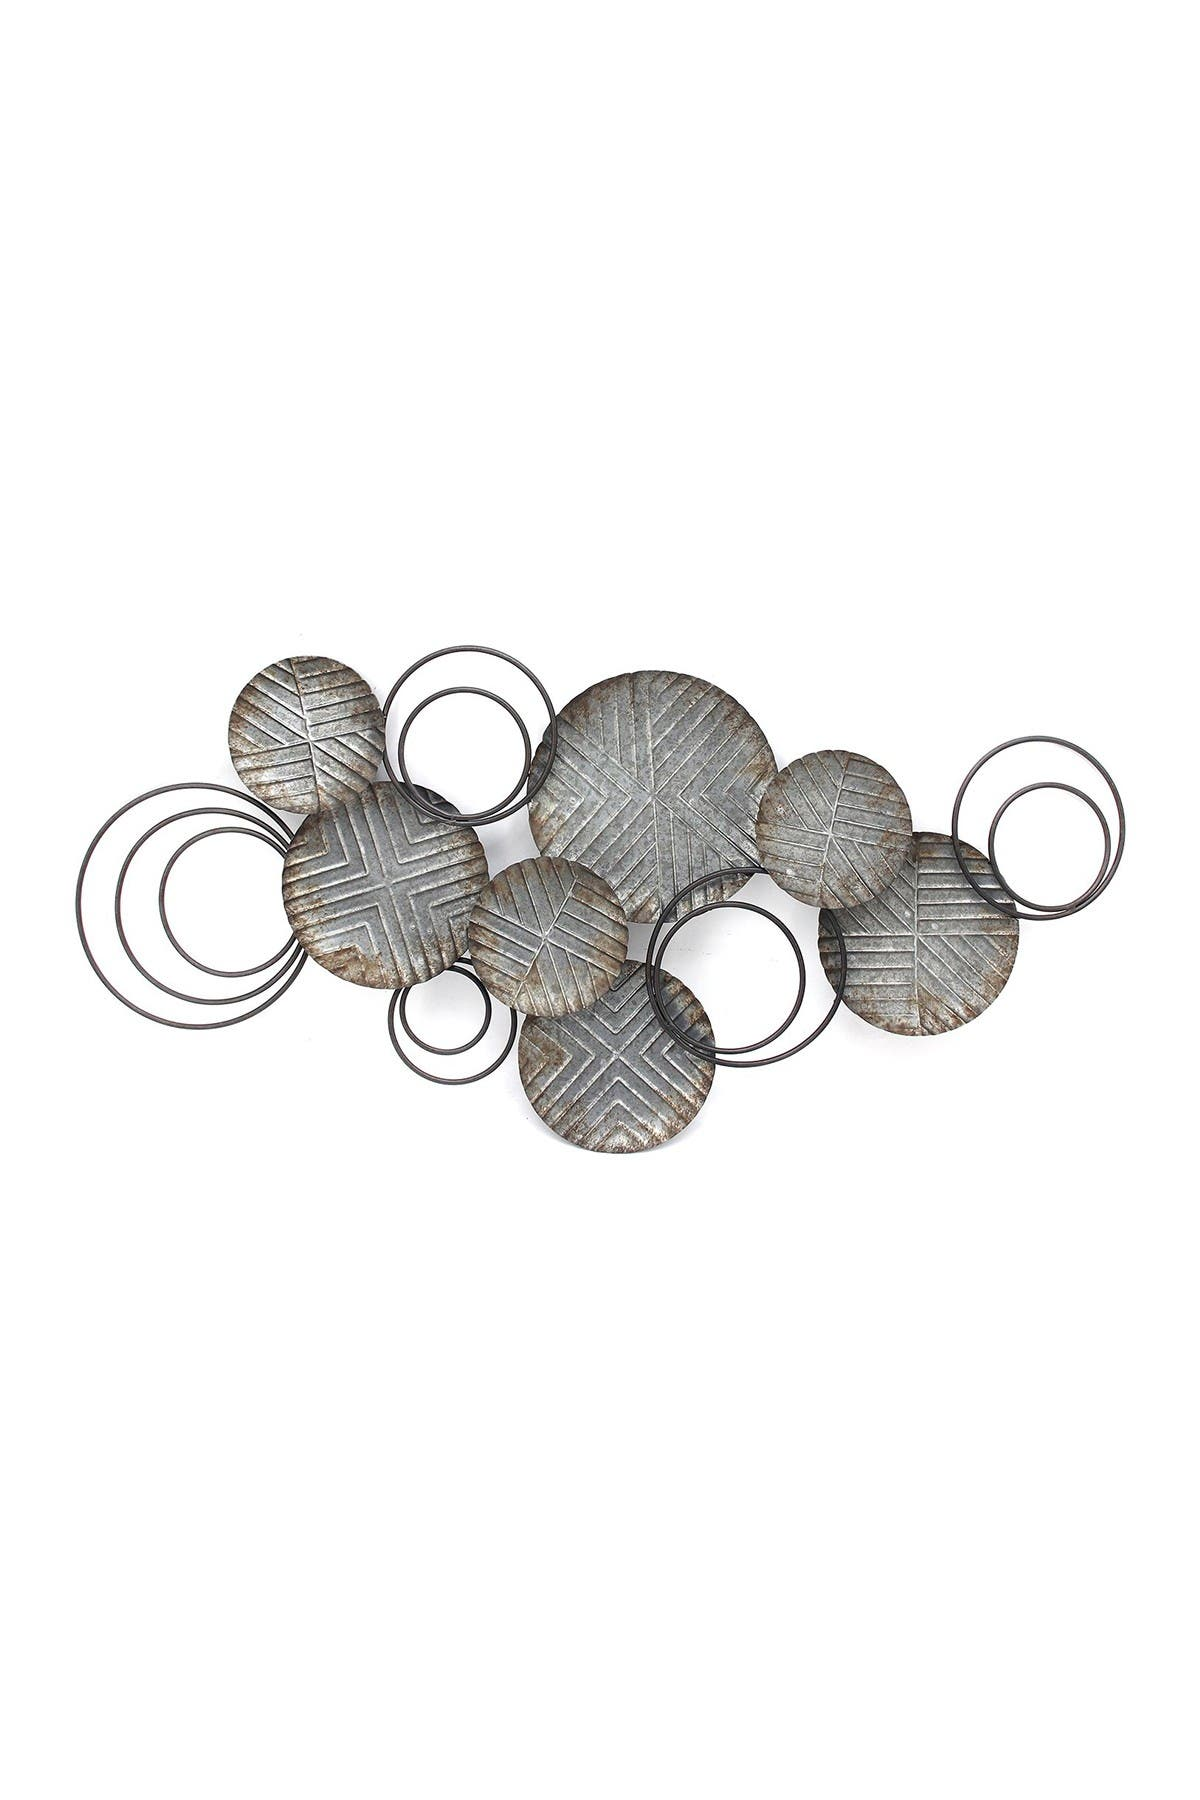 Image of Stratton Home Galvanized Plates Wall Decor